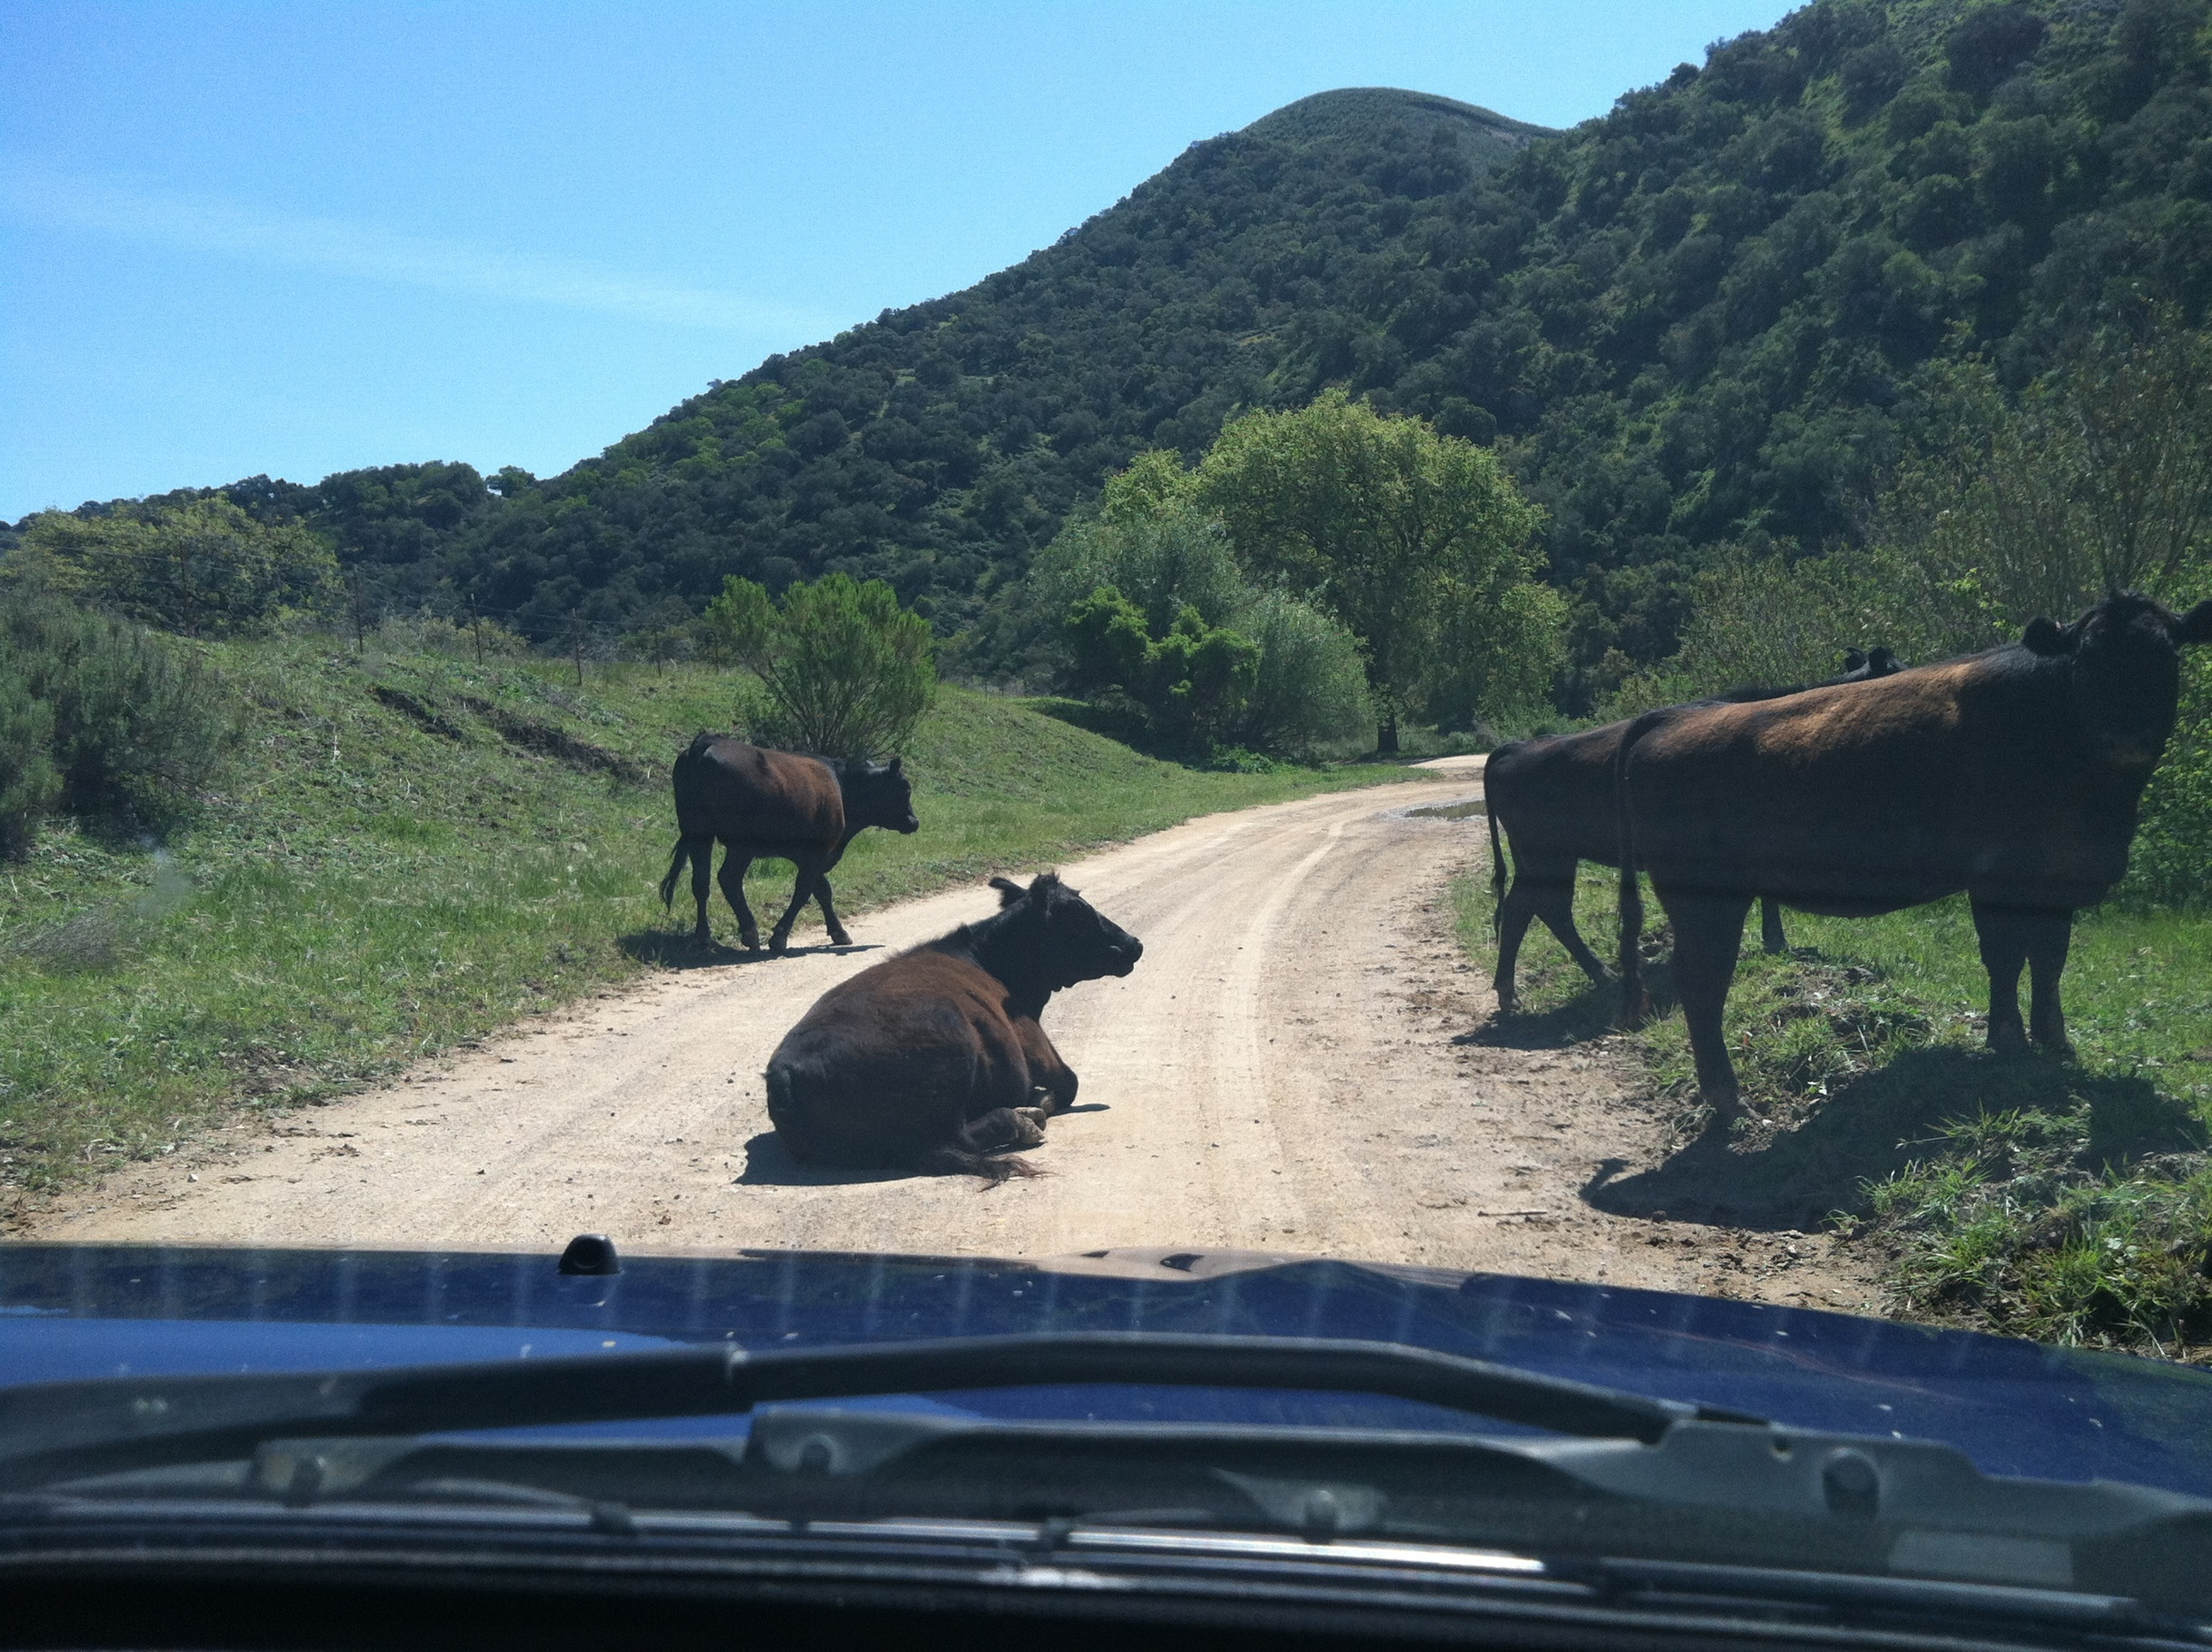 Four cows blocking a dirt road